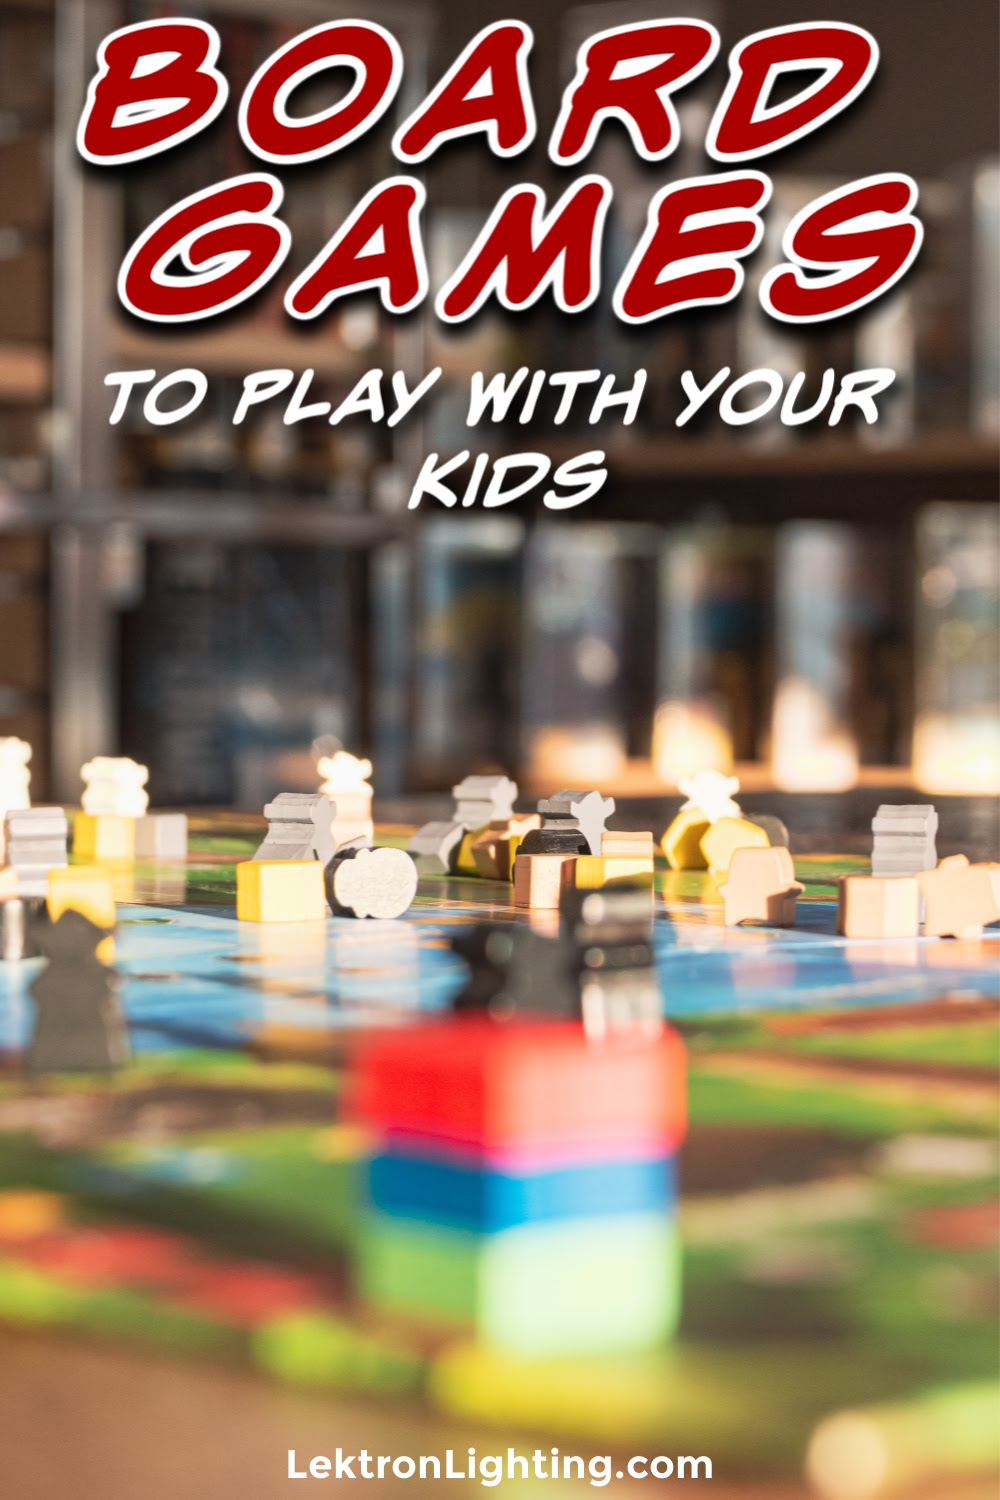 Spend time with your kids inside with some fun board games you can play with your kids to keep them entertained and learning.